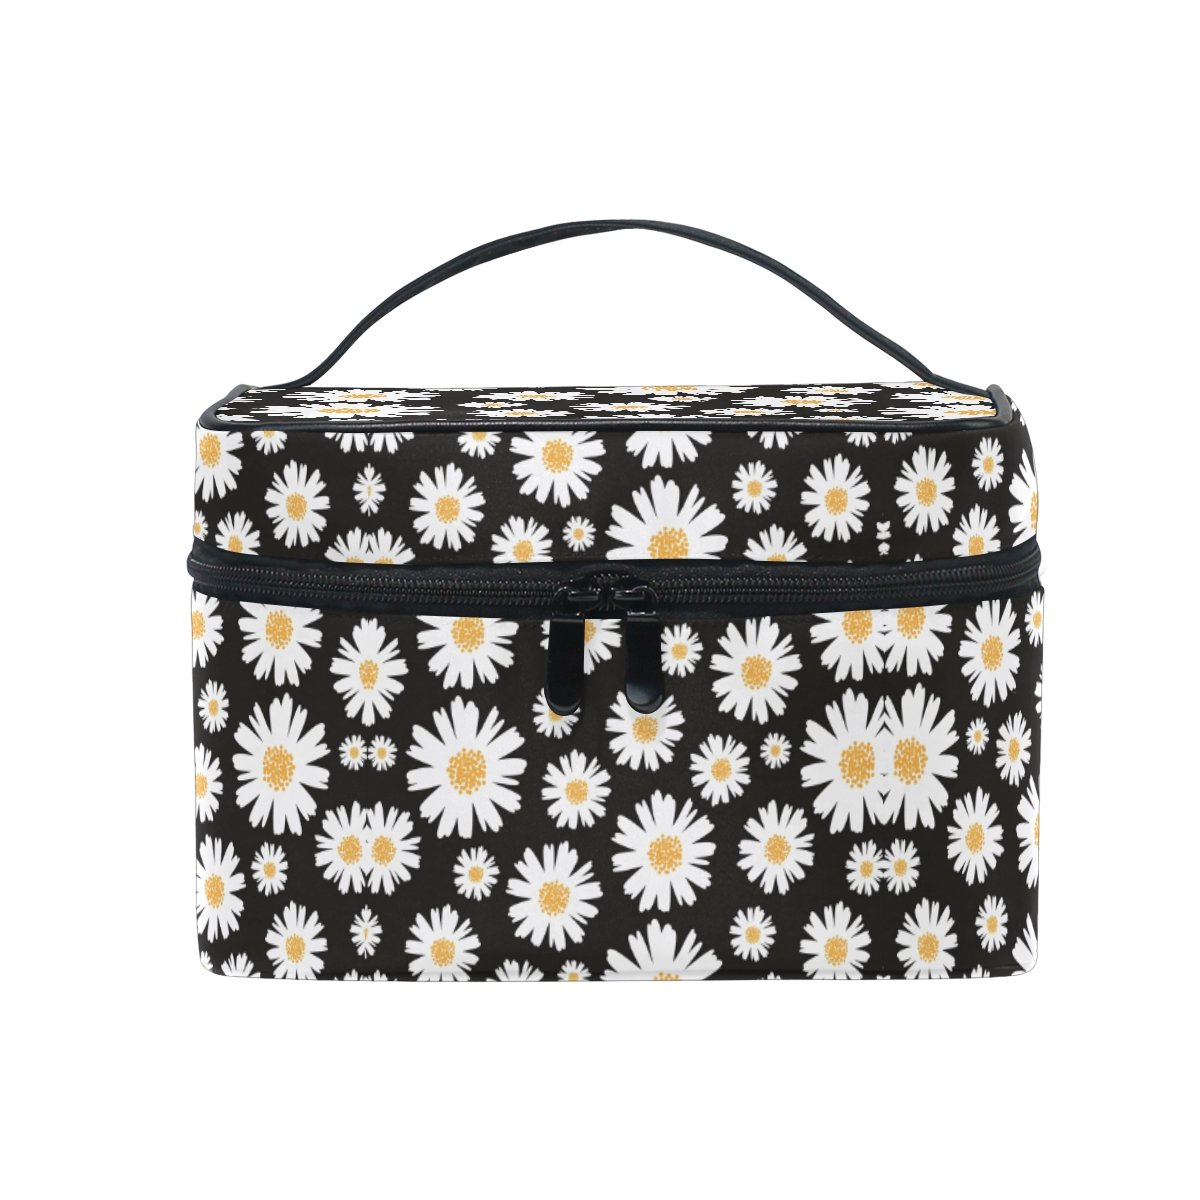 Makeup Bag Vintage Fresh Daisy Travel Cosmetic Bags Organizer Train Case Toiletry Make Up Pouch